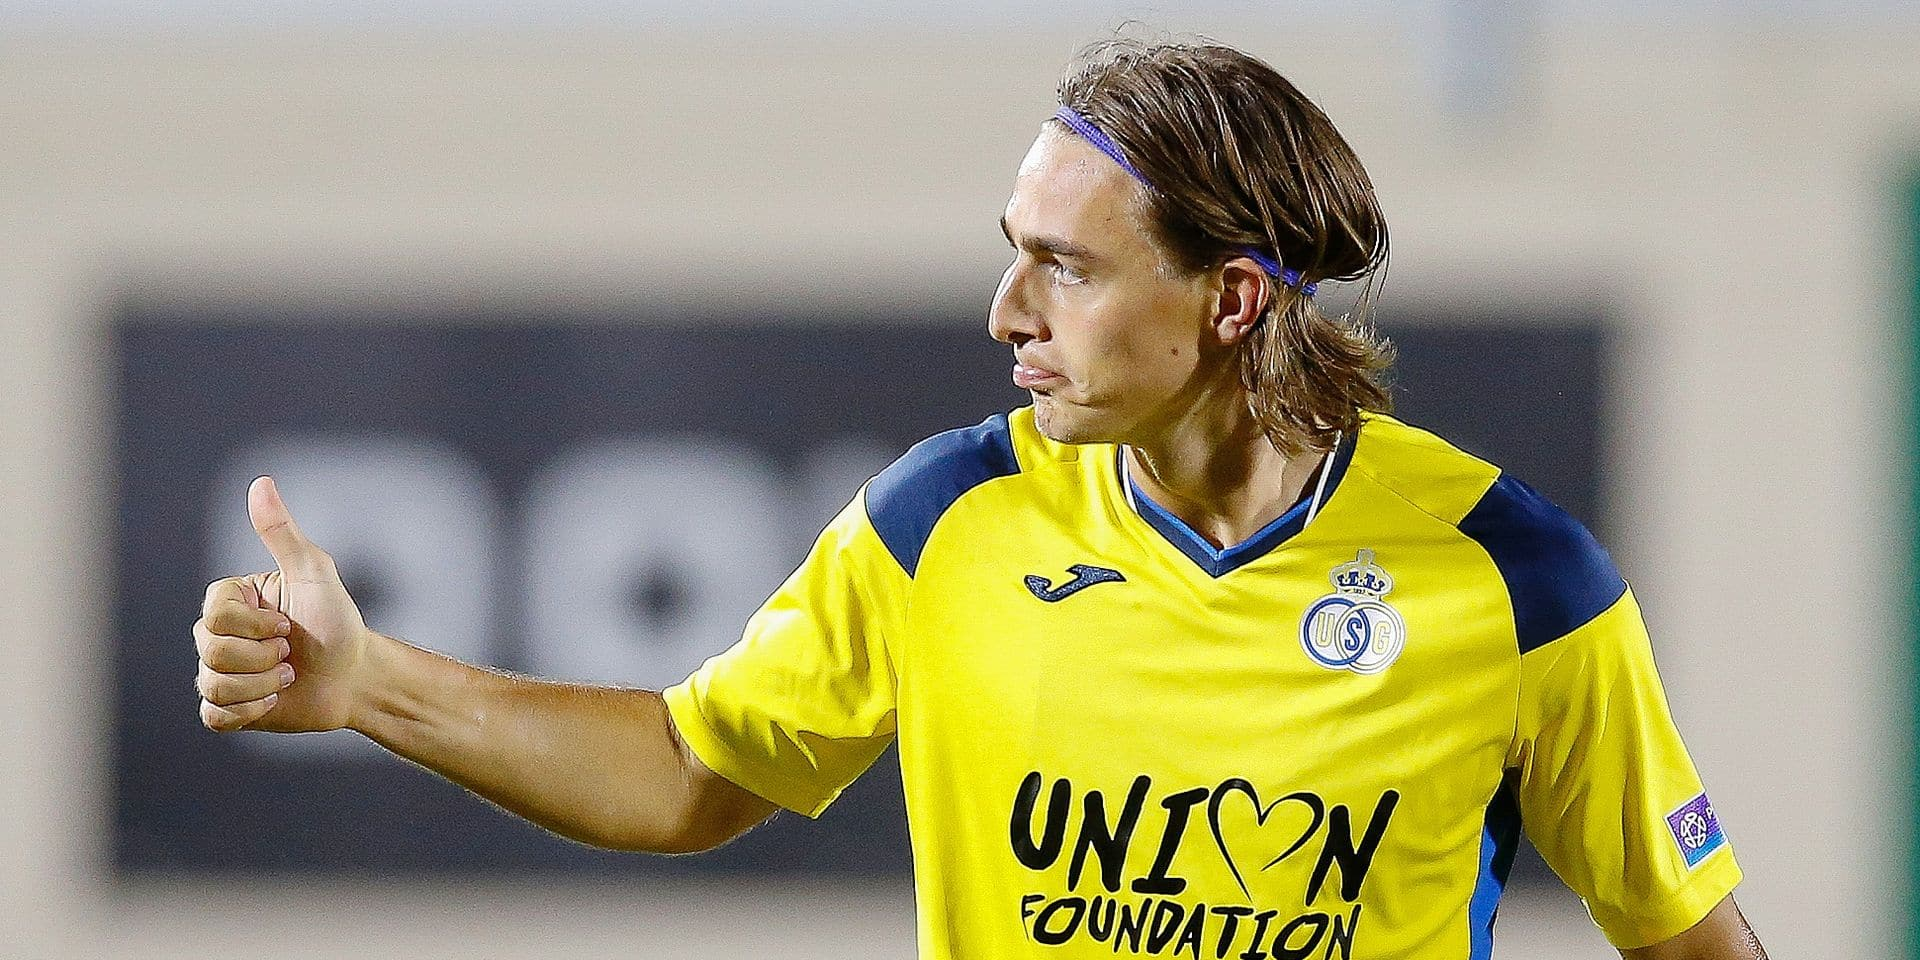 Union's Casper Nielsen celebrates after scoring during a soccer match between Excelsior Virton and Royale Union Saint-Gilloise, Saturday 10 August 2019 in Virton, on day two of the 'Proximus League' 1B division of the Belgian soccer championship. BELGA PHOTO BRUNO FAHY